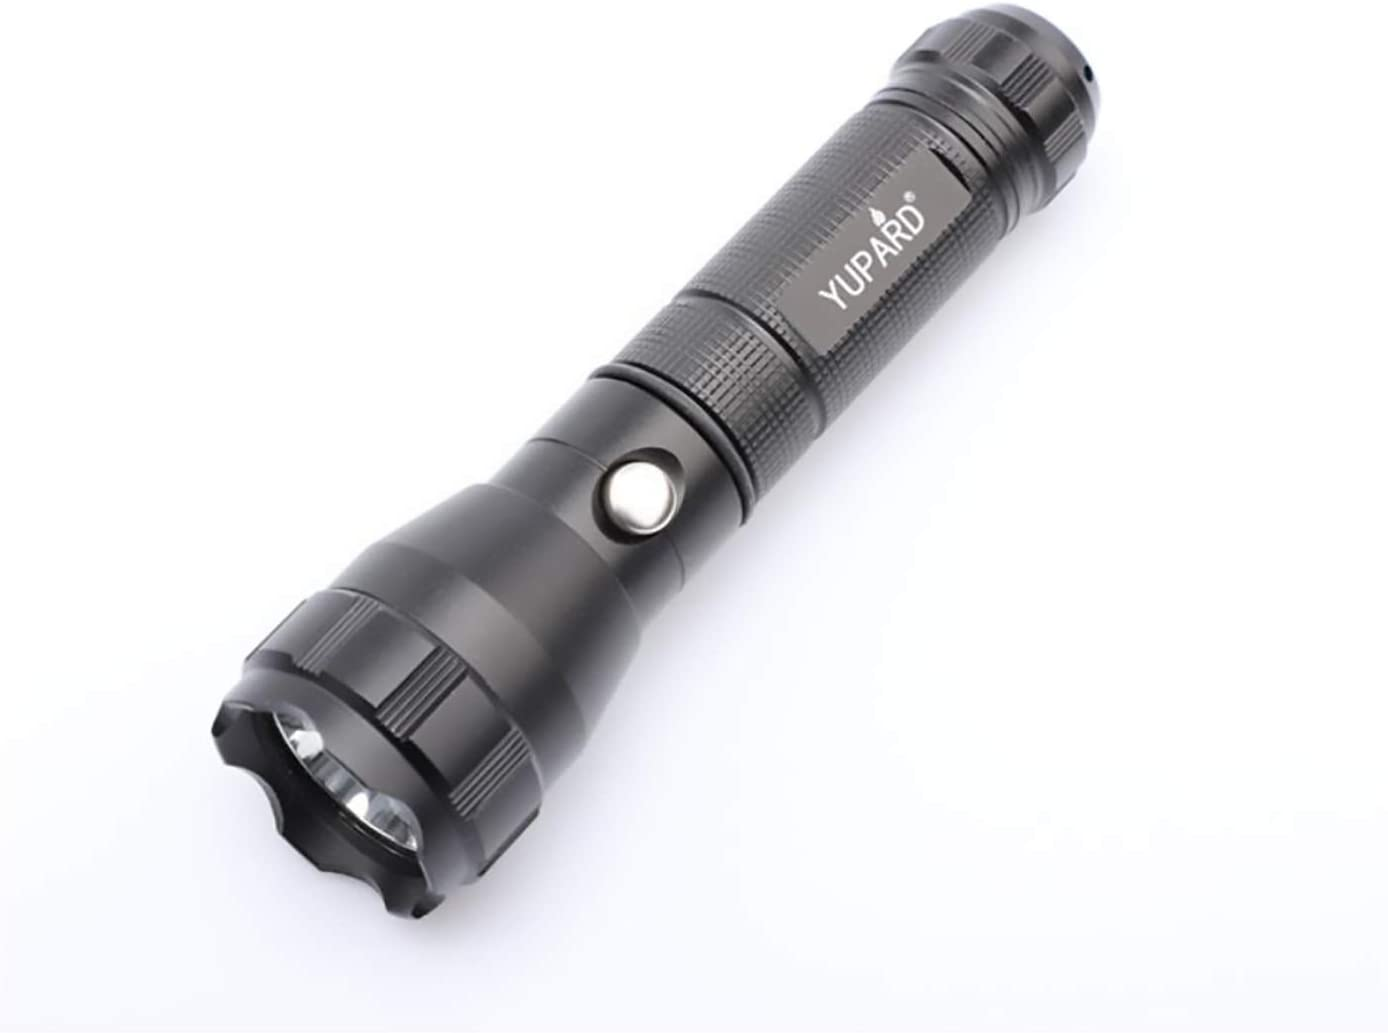 CHICIRIS Rechargeable Q5 LED Flashlight Popular standard Strong Max 45% OFF 300Lm Li Modes 3